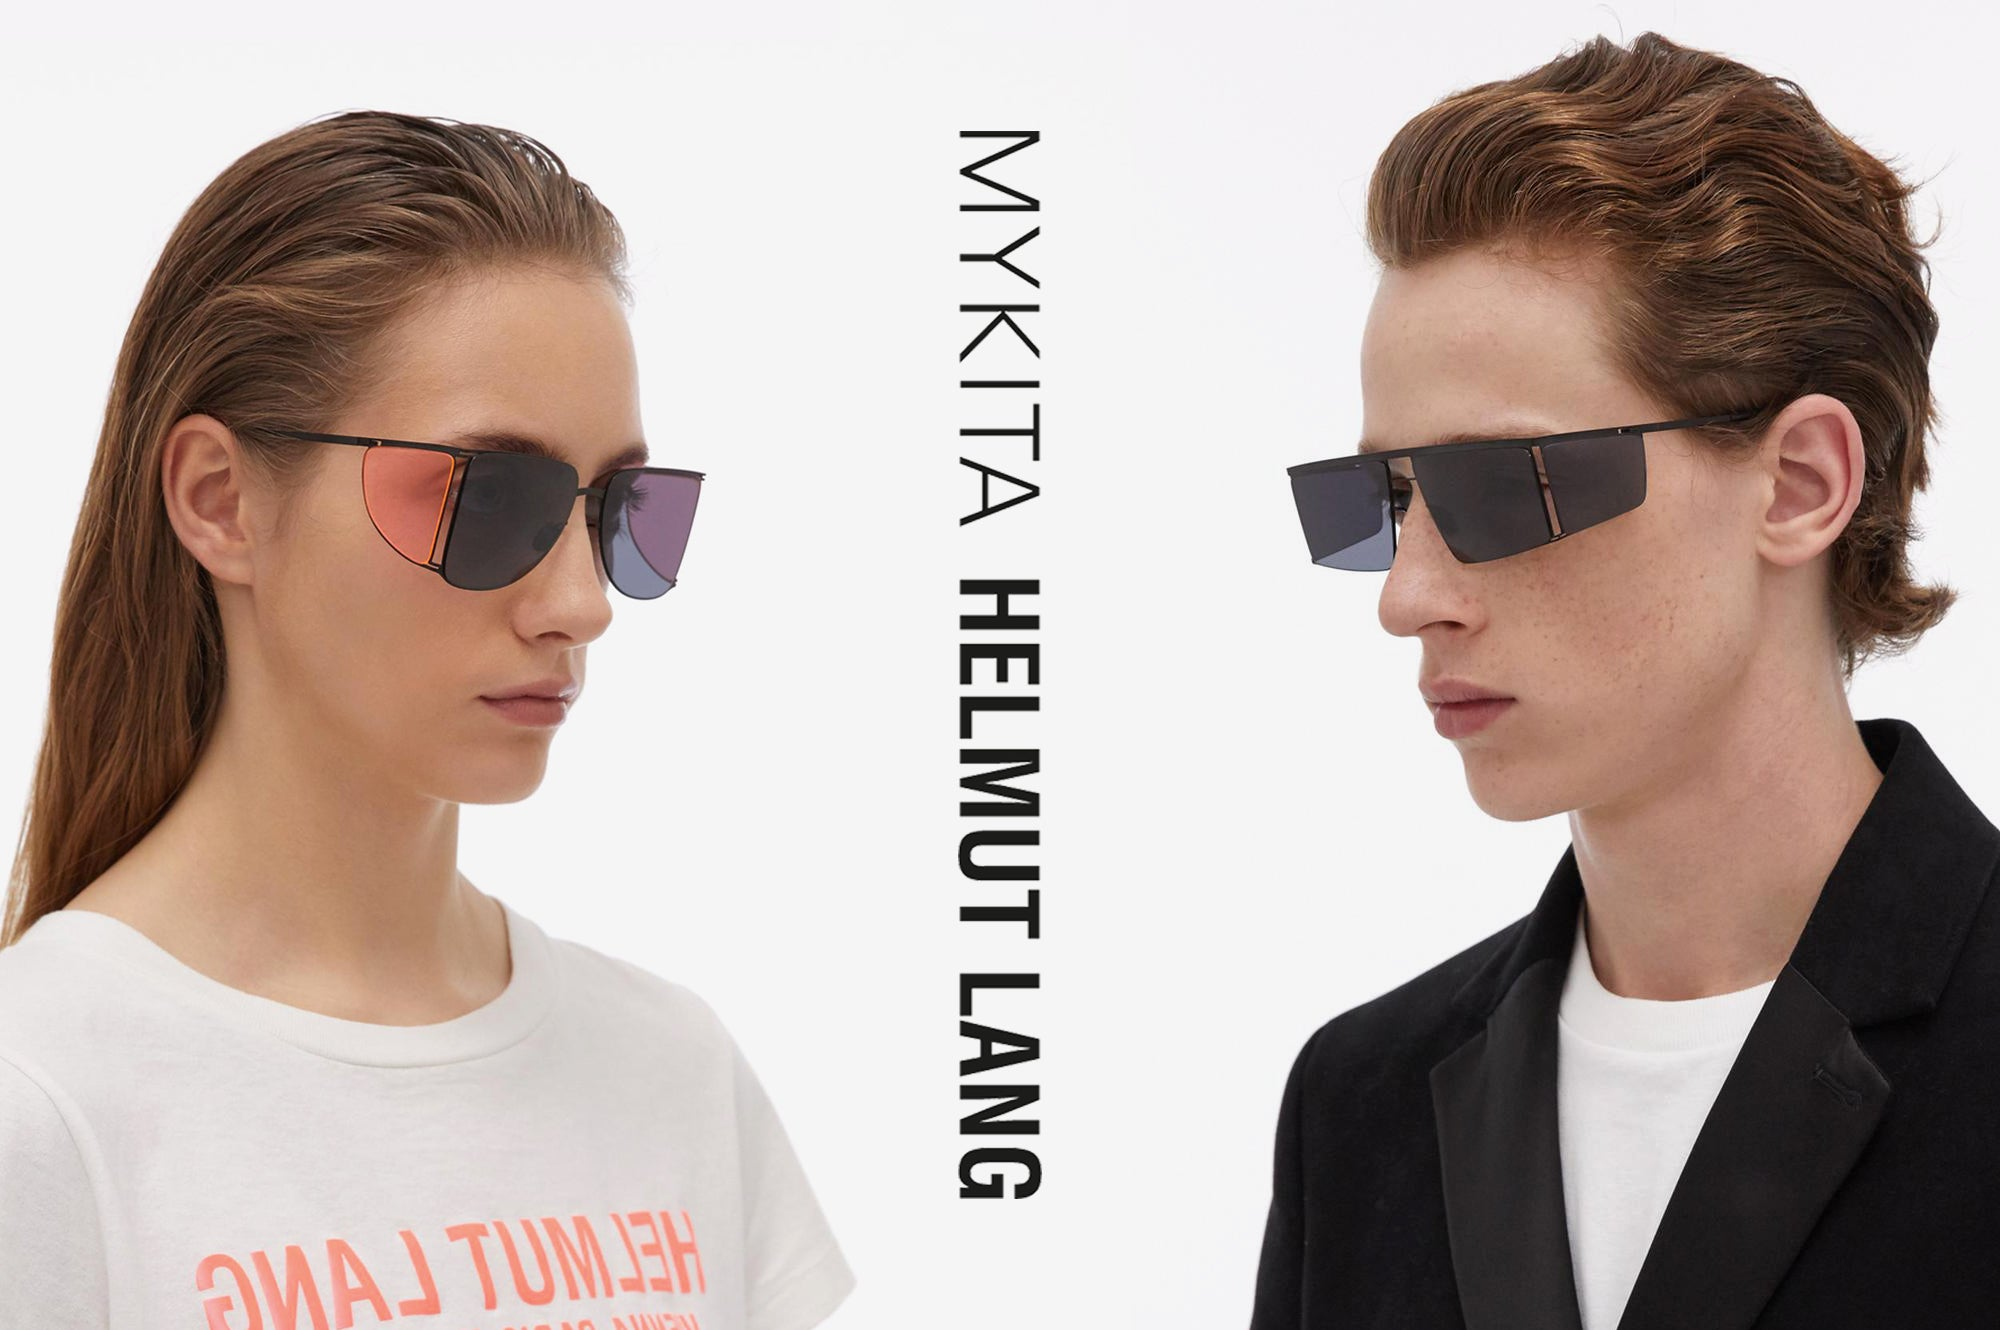 MYKITA® and HELMUT LANG